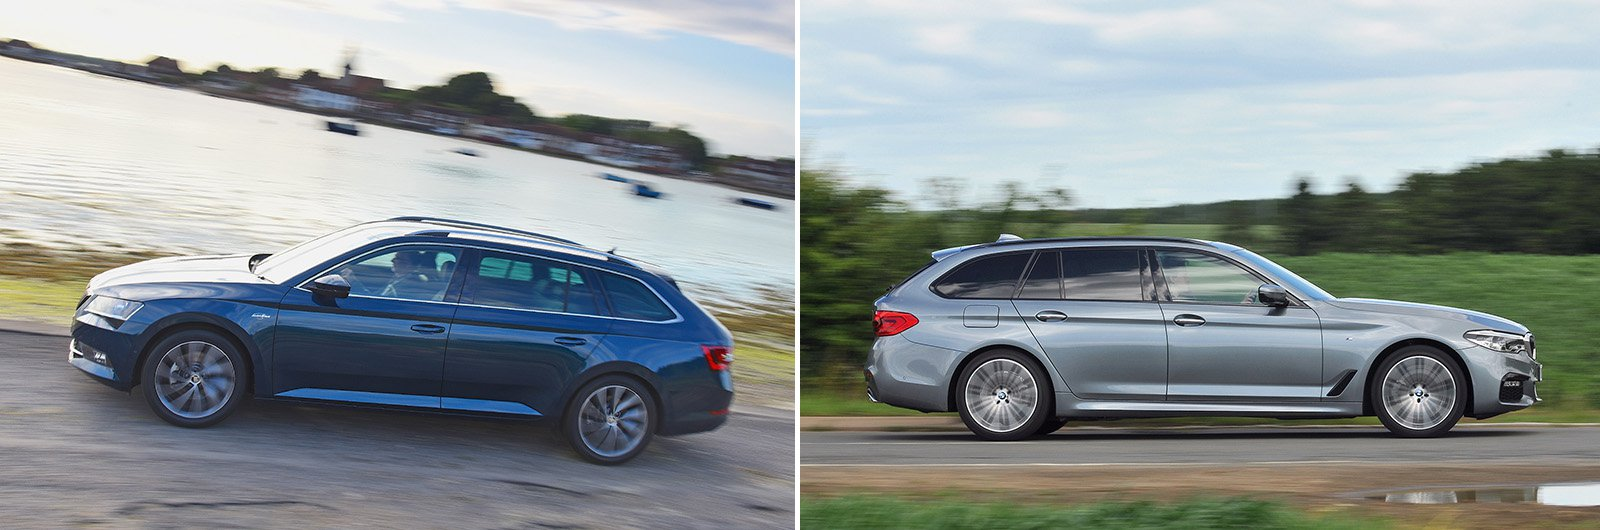 New Skoda Superb Estate vs used BMW 5 Series Touring